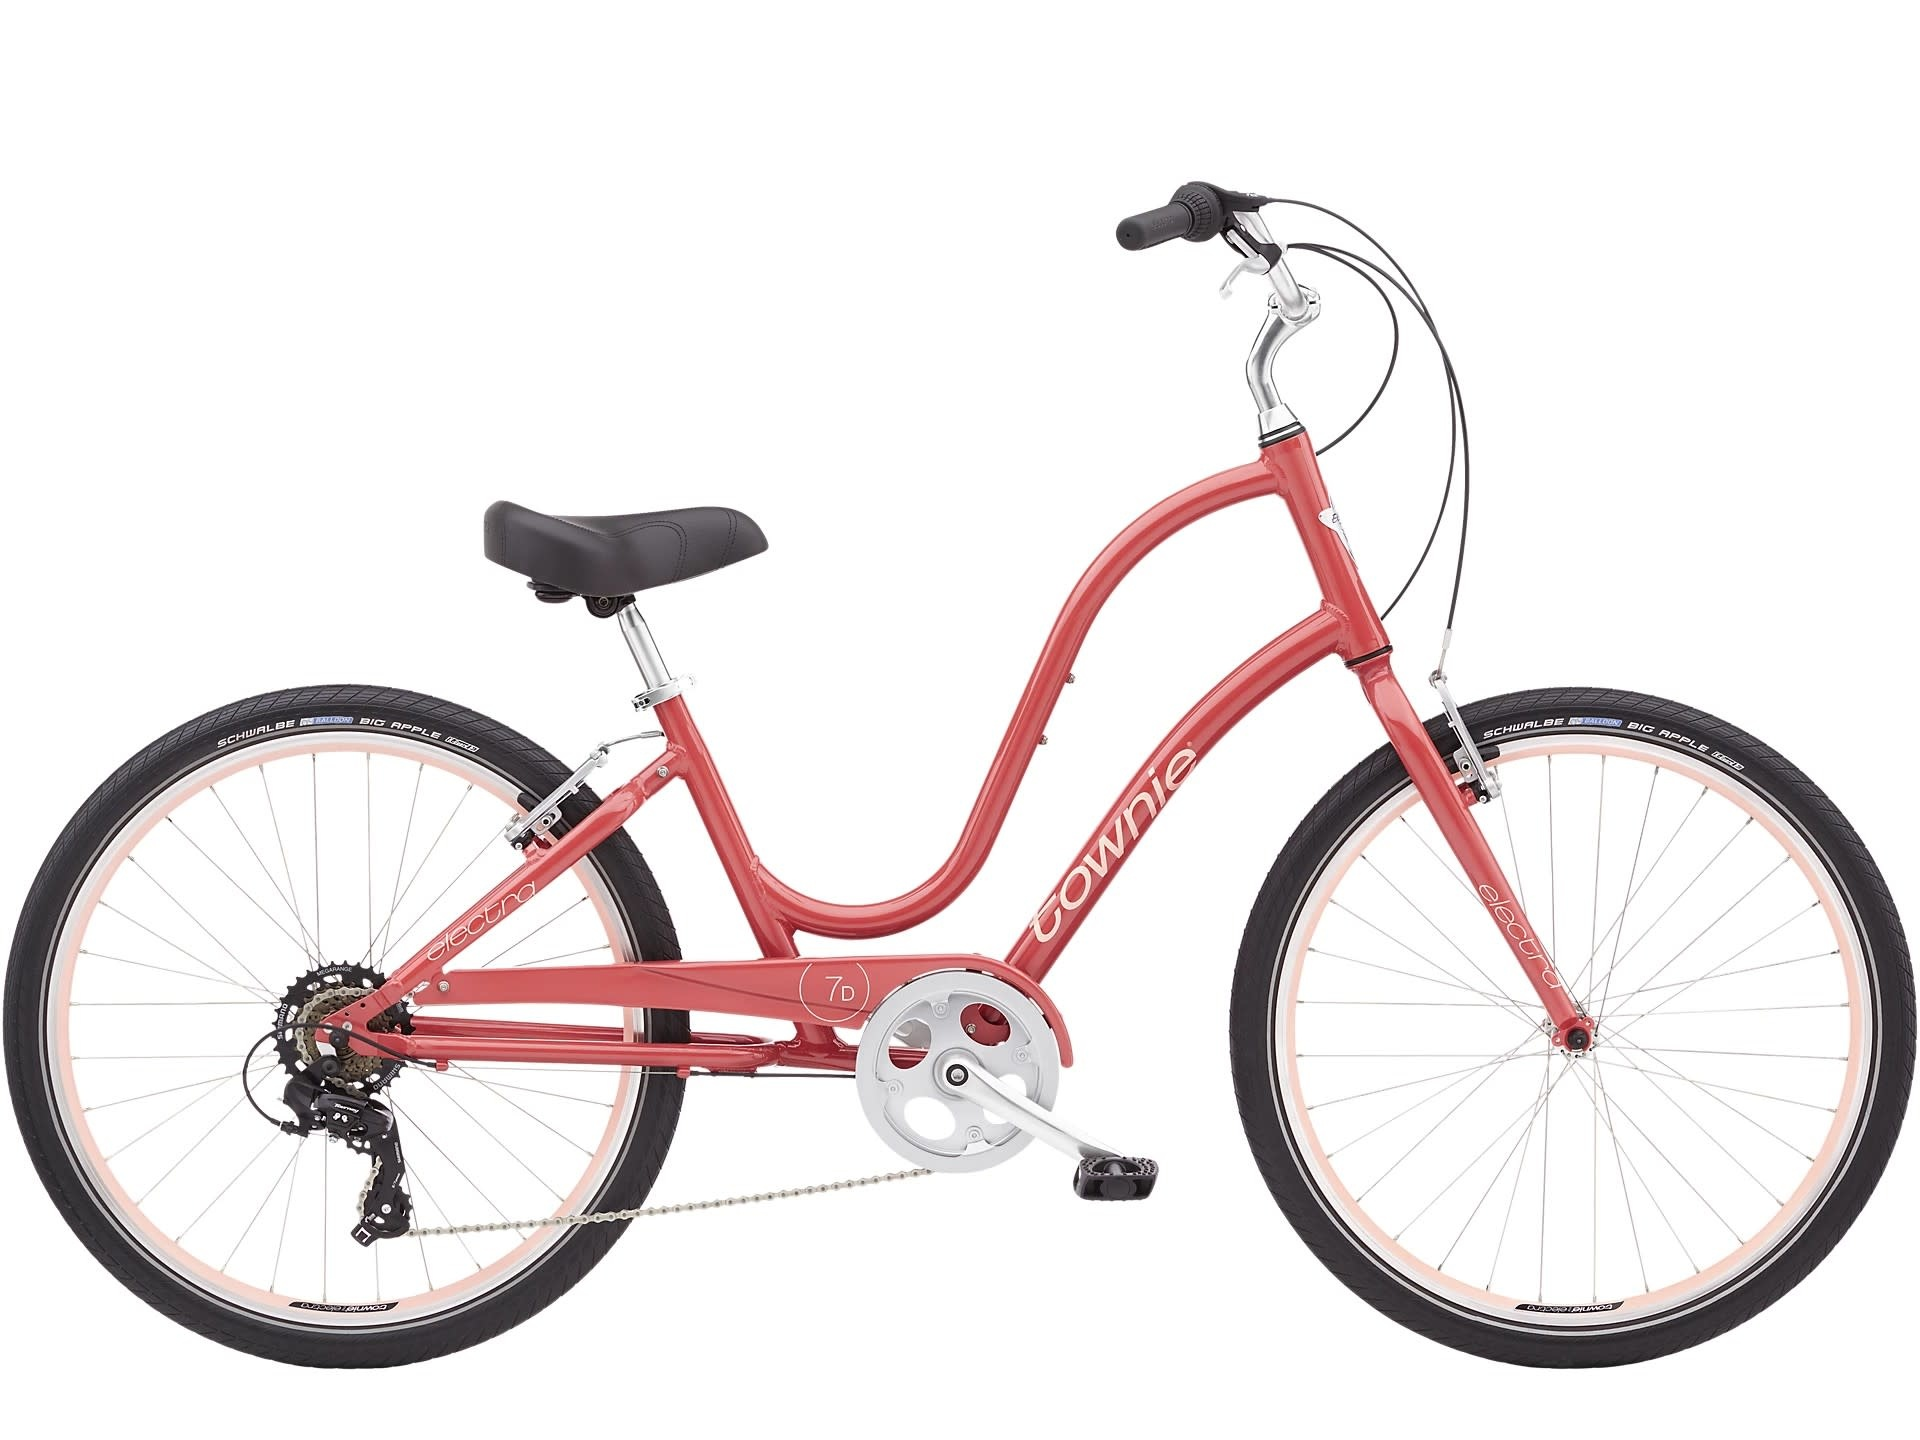 Electra Townie 7D-2